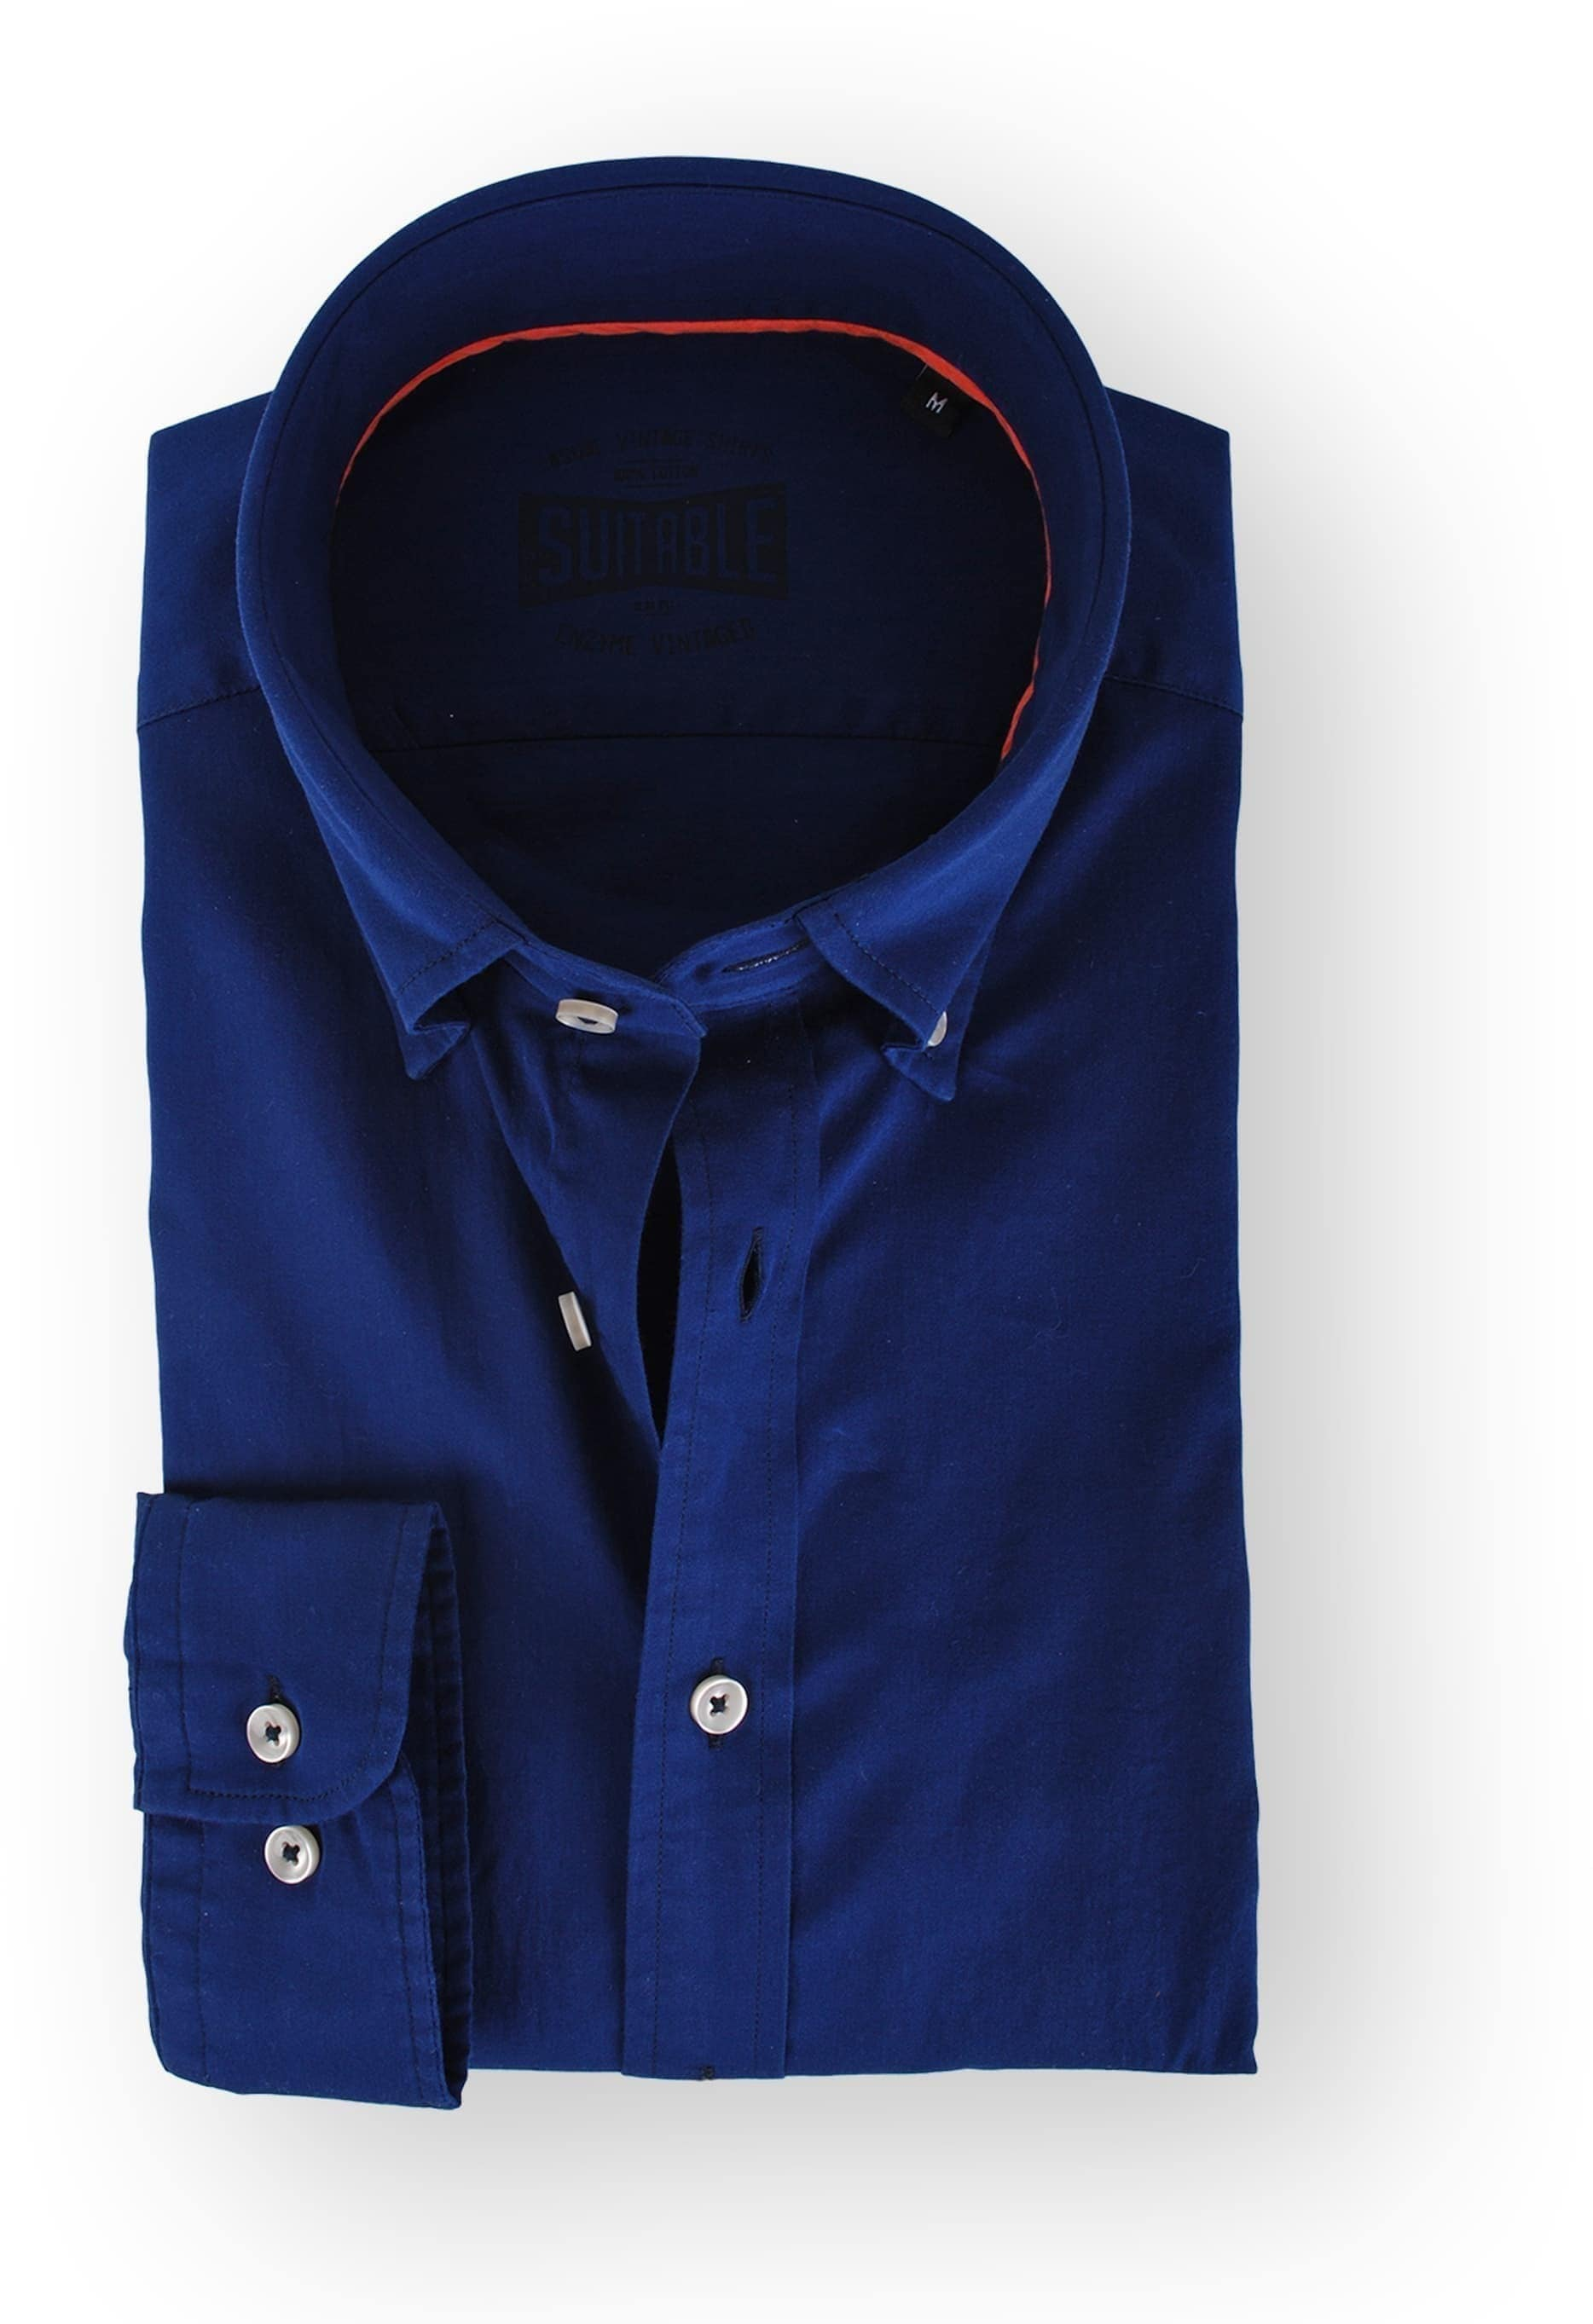 Suitable Dark Blue Casual Shirt